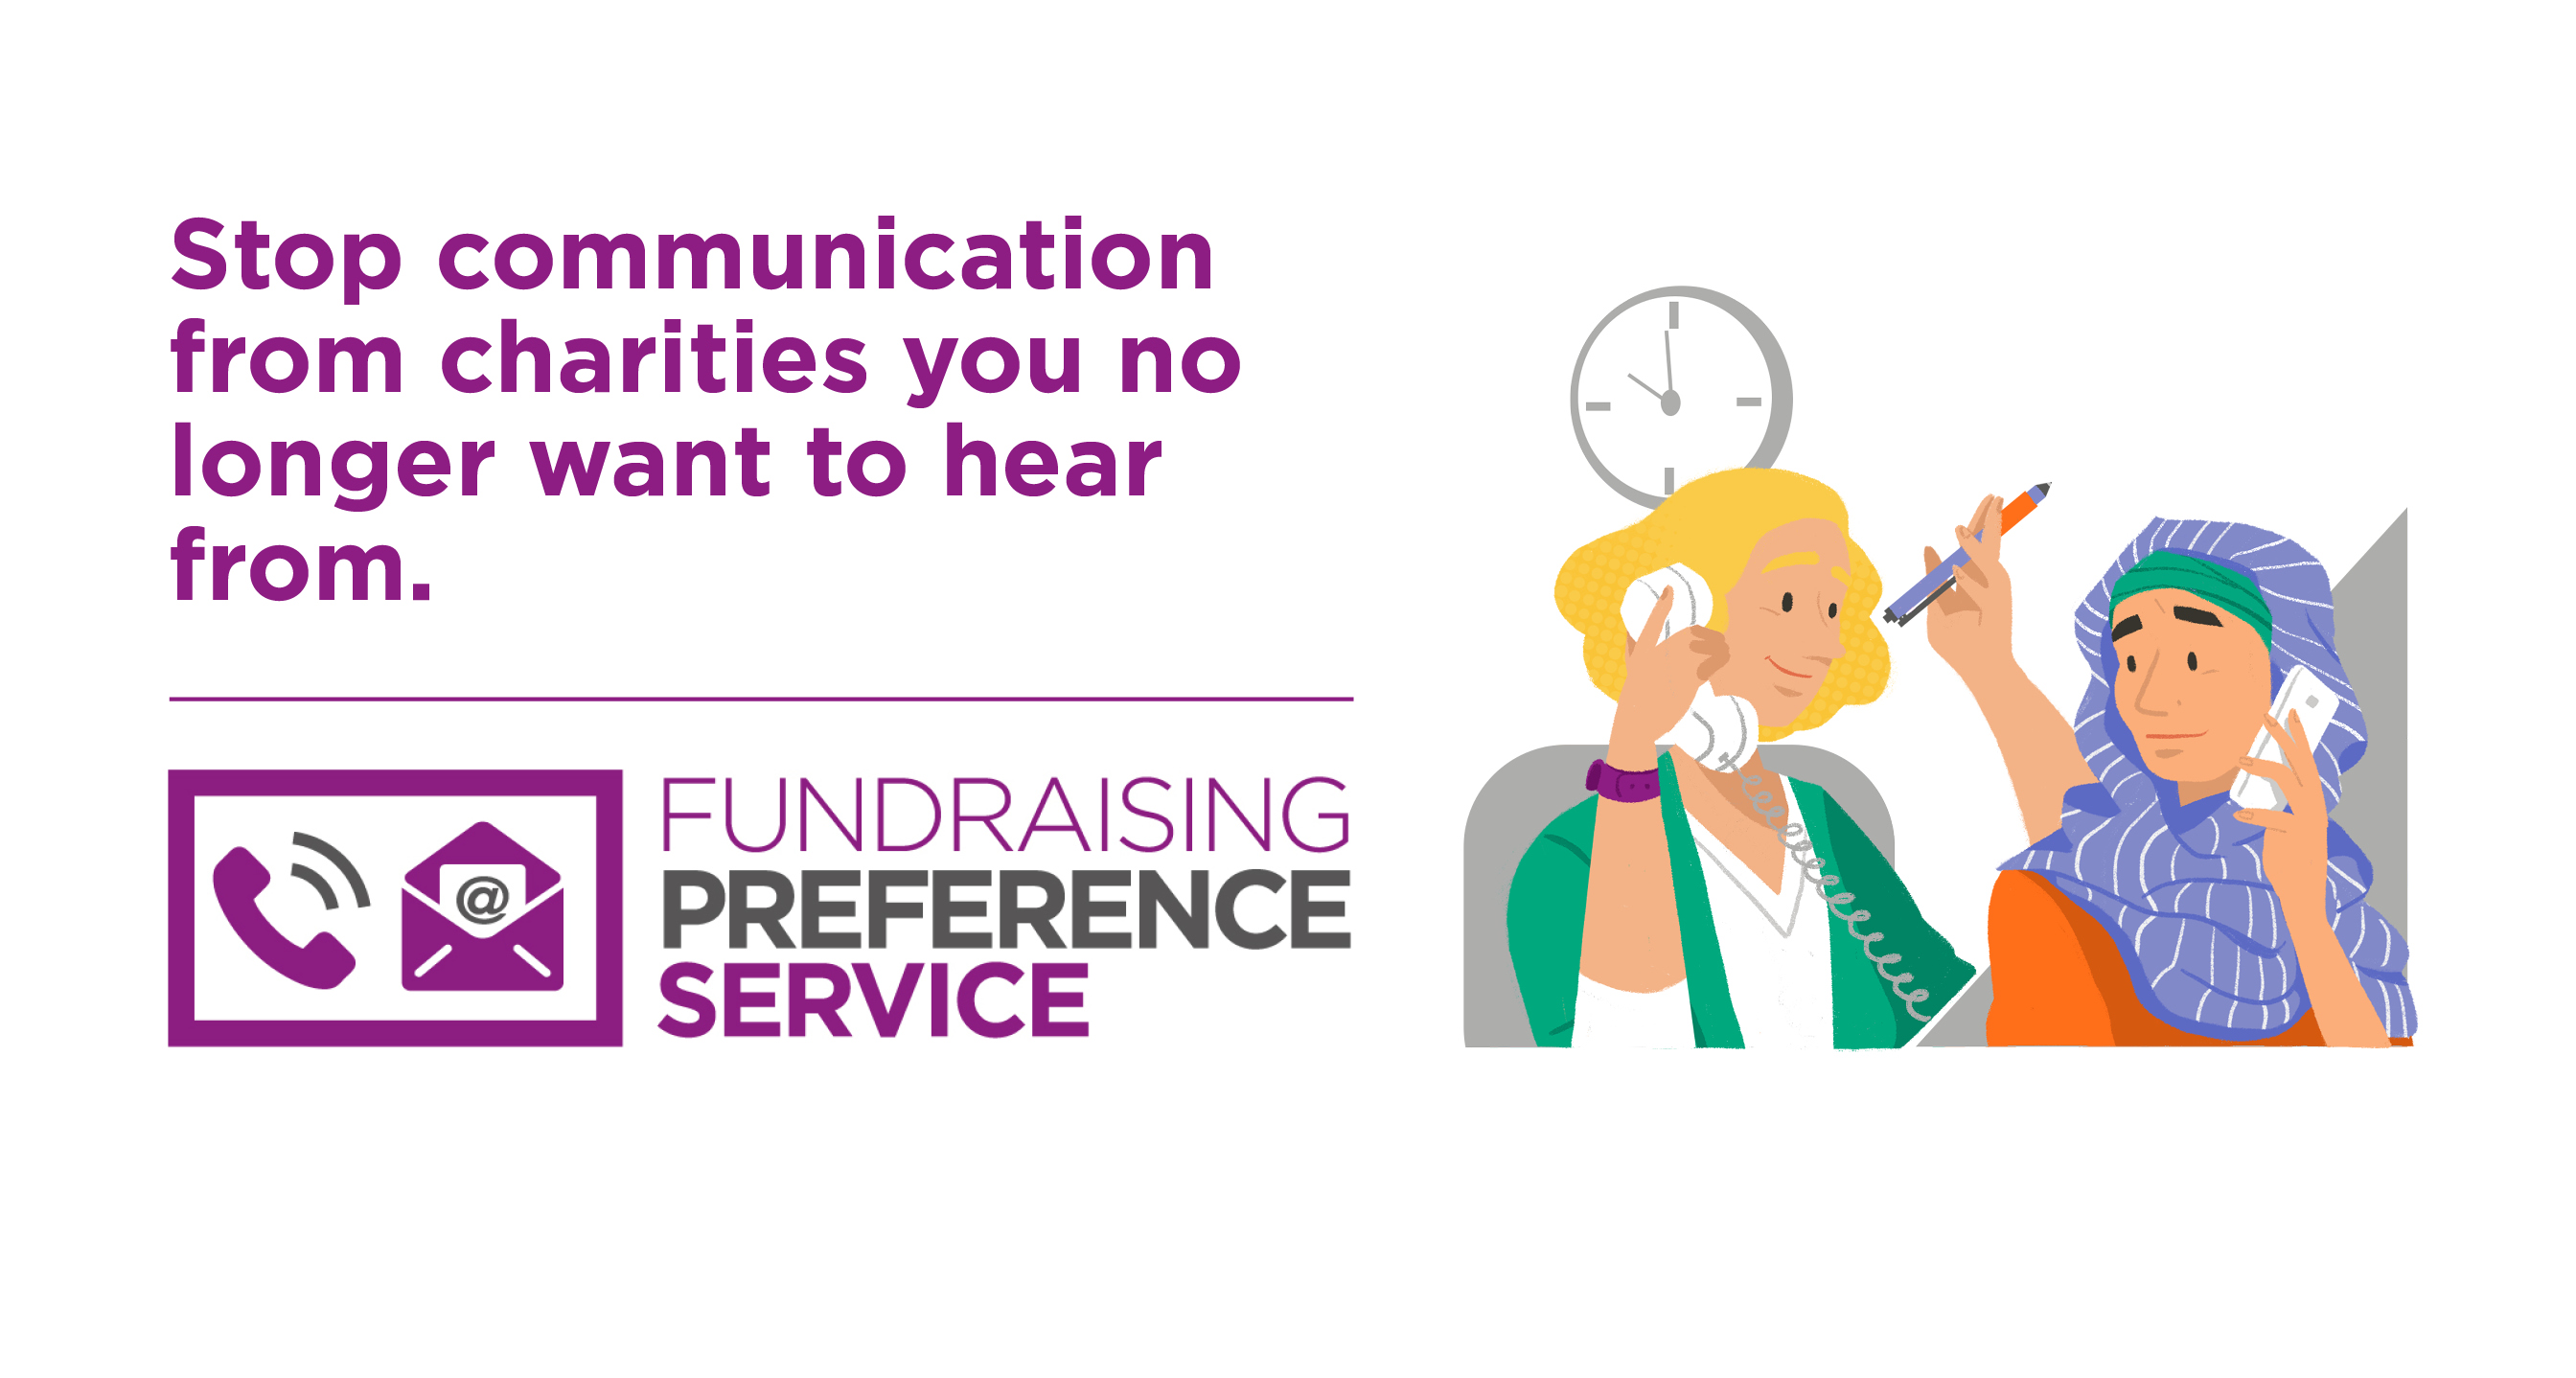 Stop communications from charities you no longer want to hear from